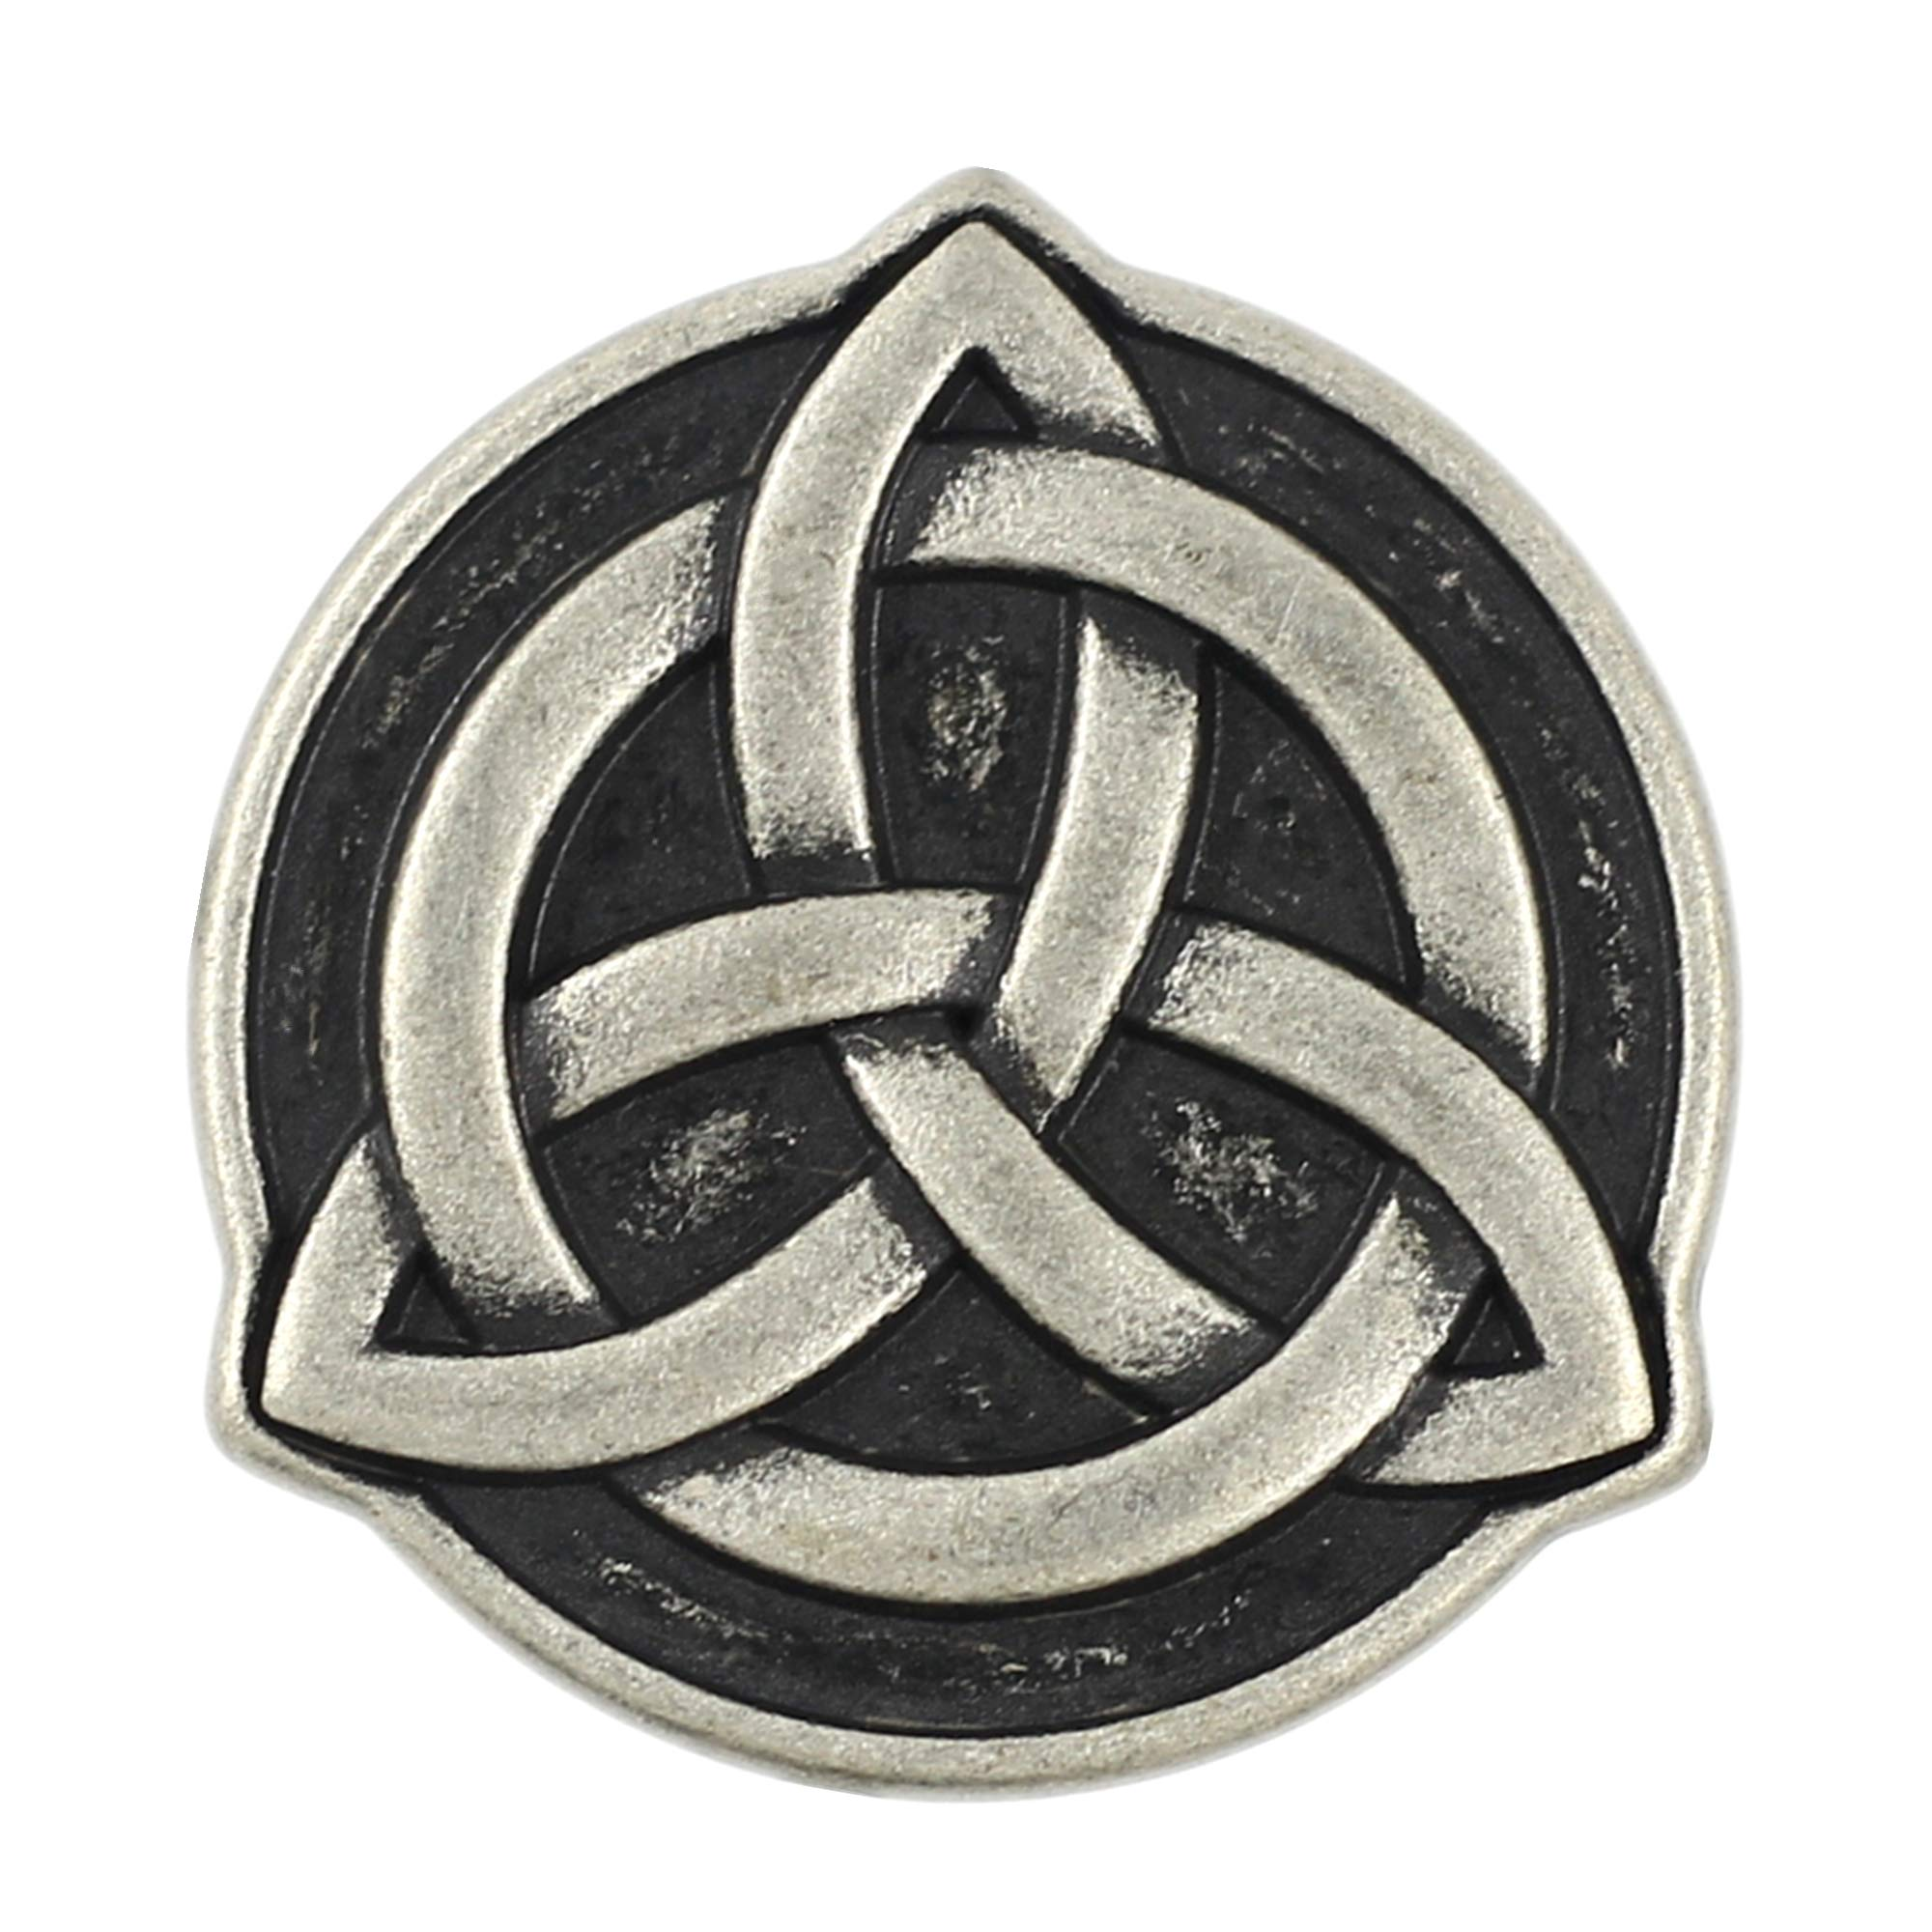 Bezelry 10 Pieces Celtic Trinity Knot Metal Shank Buttons. 22mm (7/8 inch) (Antique Silver)